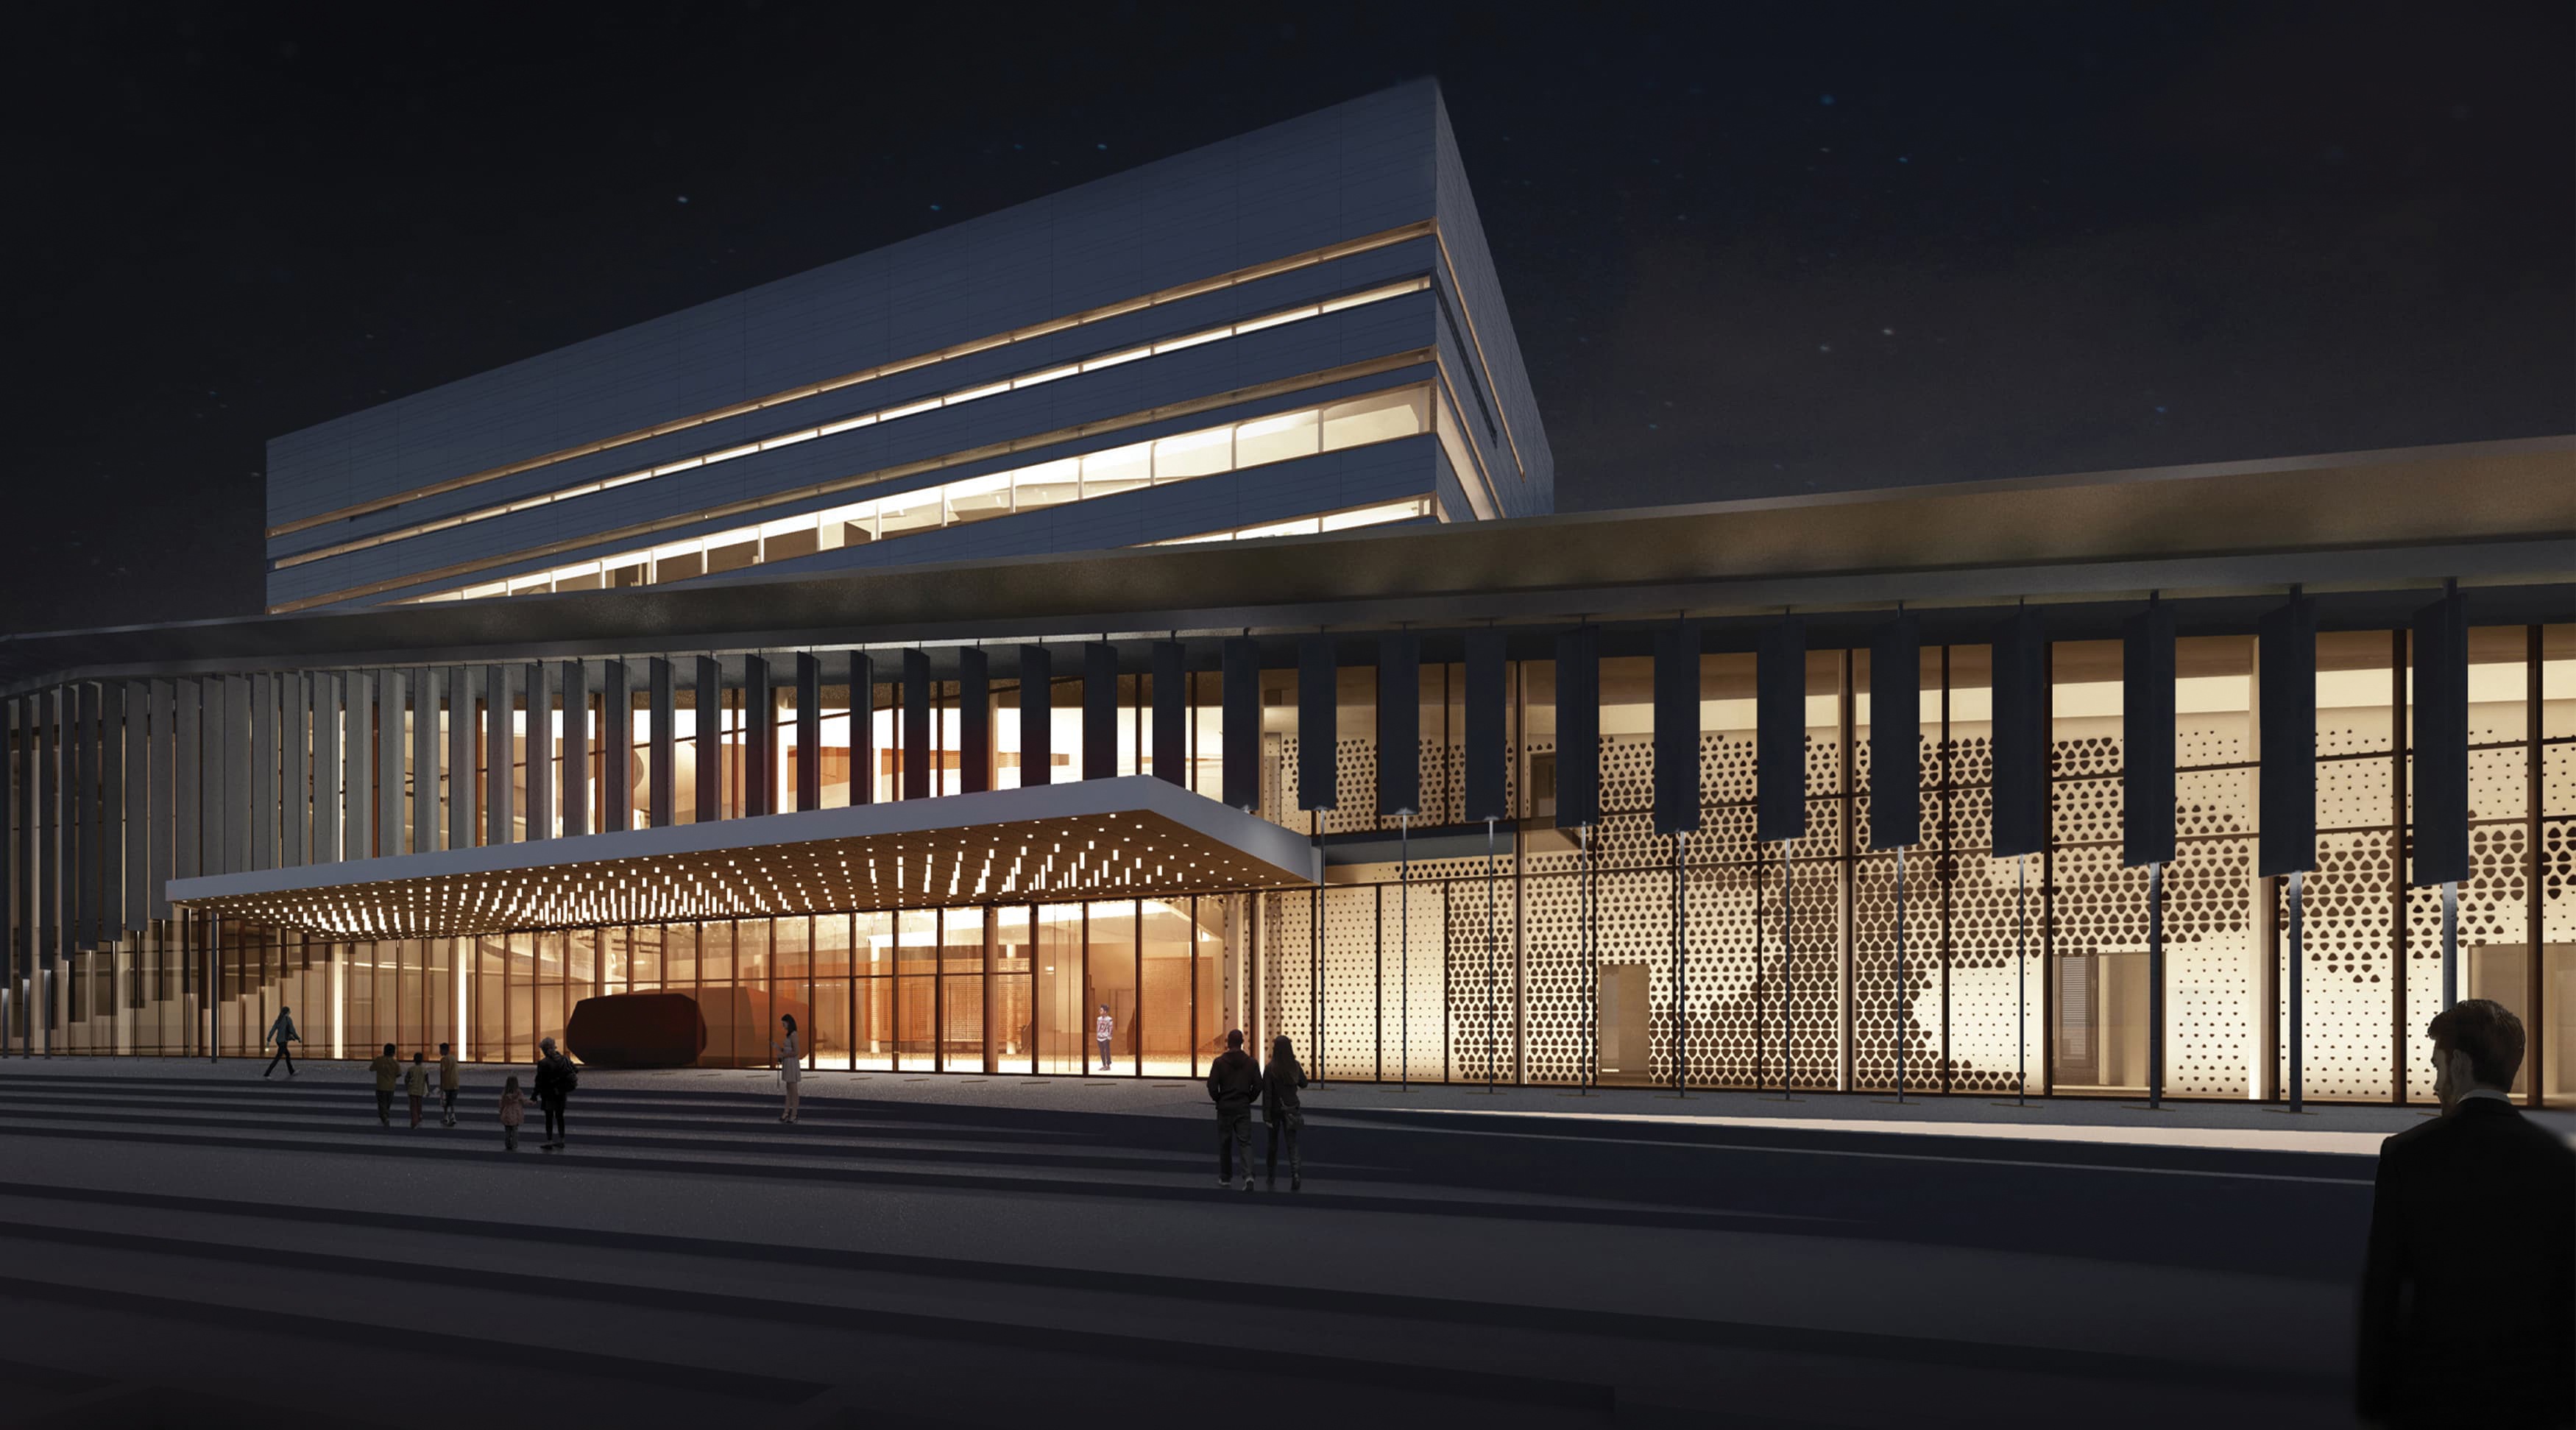 The Buddy Holly Hall of Performing Arts and Sciences, in Lubbock, Texas, architectural rendering